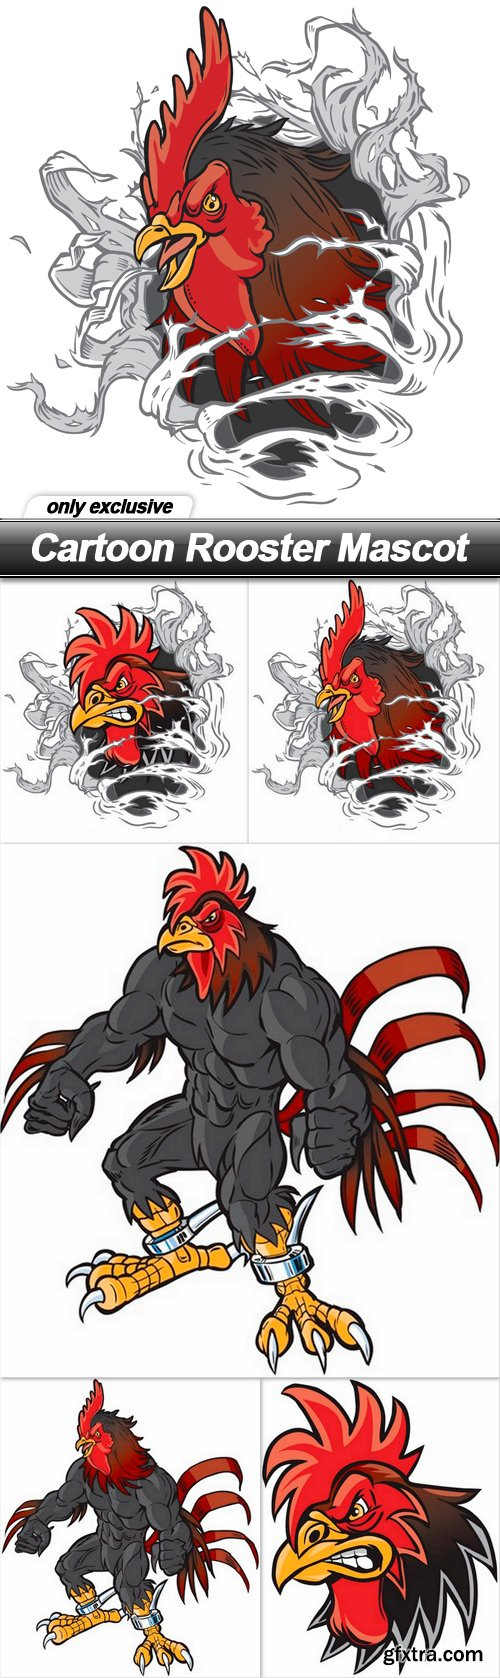 Cartoon Rooster Mascot - 5 EPS